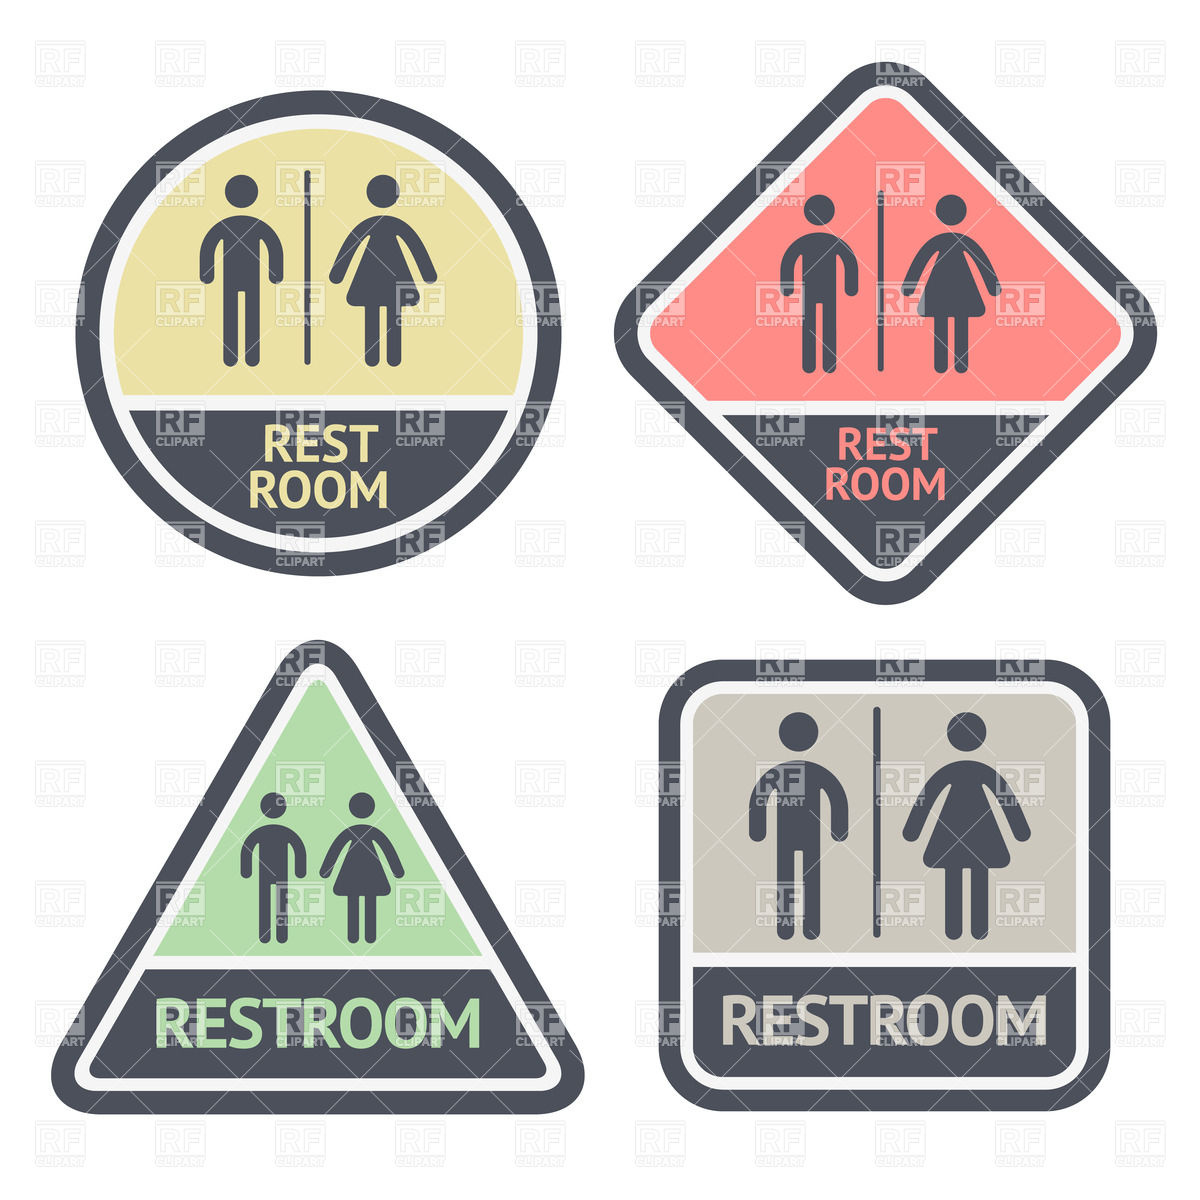 1200x1200 Round, Square And Triangle Flat Restroom Symbols Vector Image